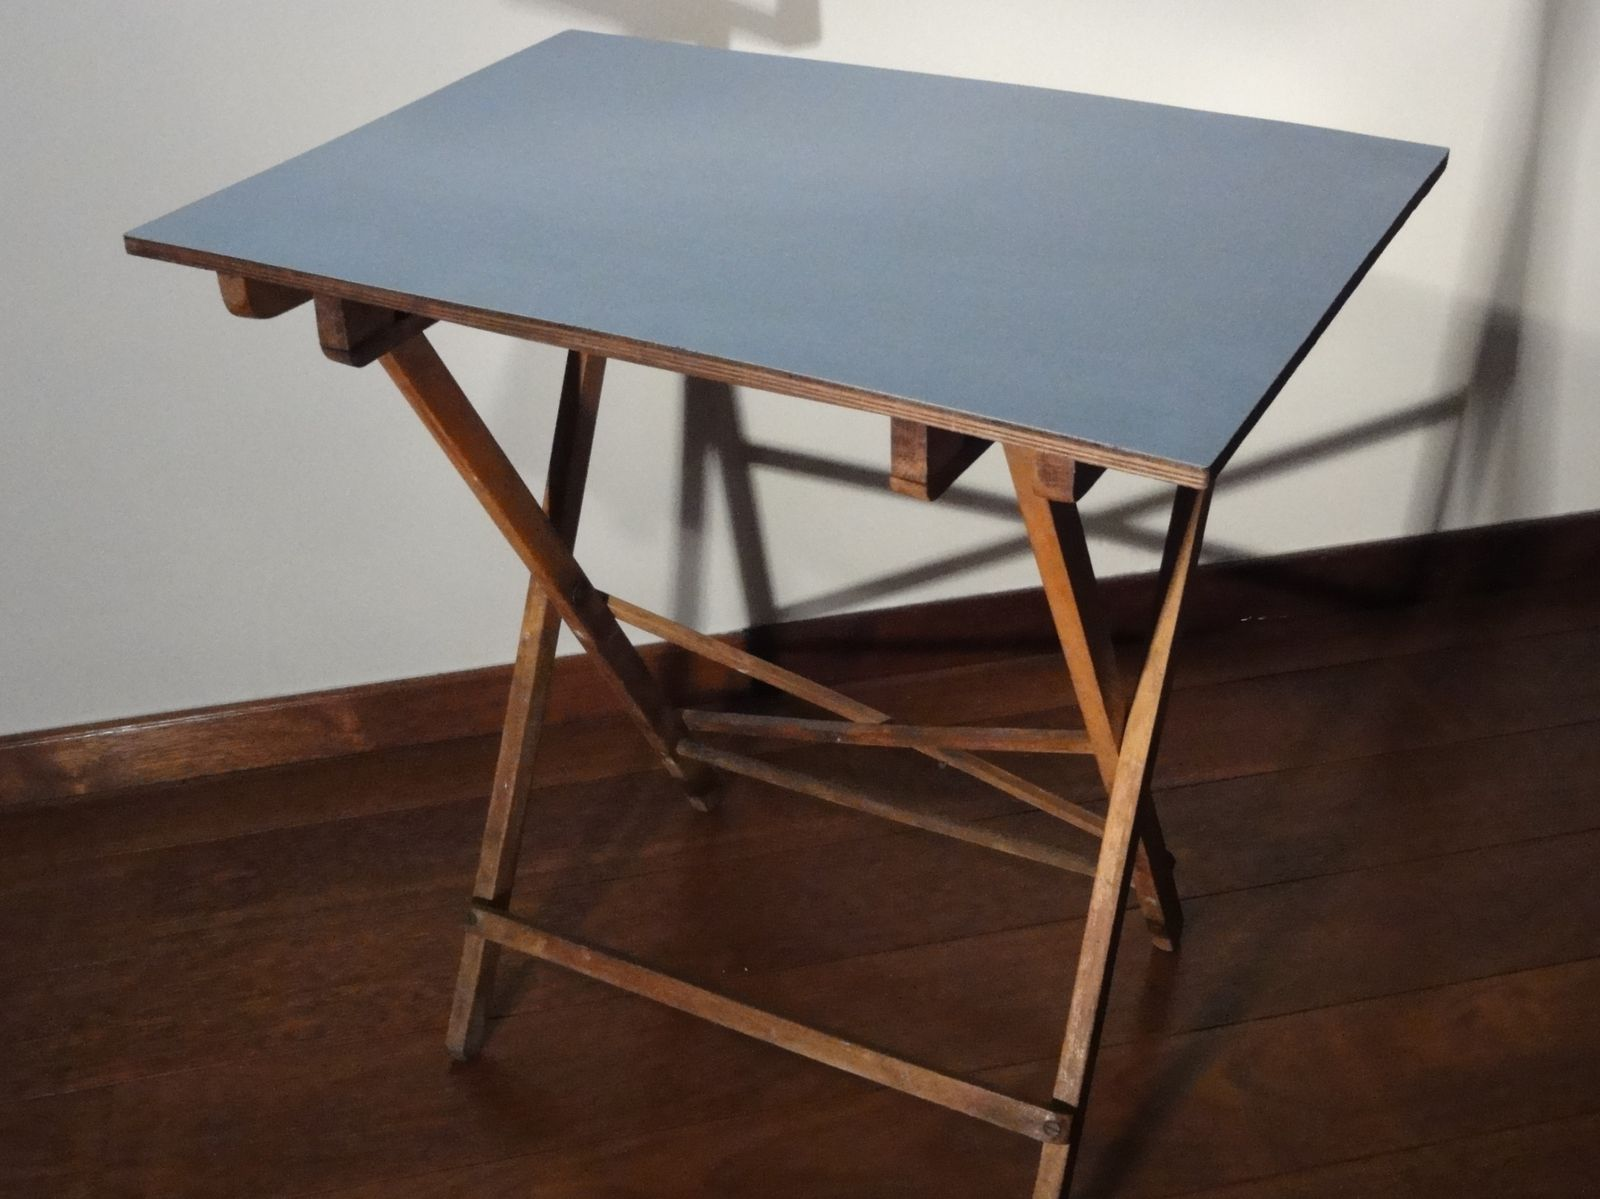 Petite table pliante for Petite table pliante